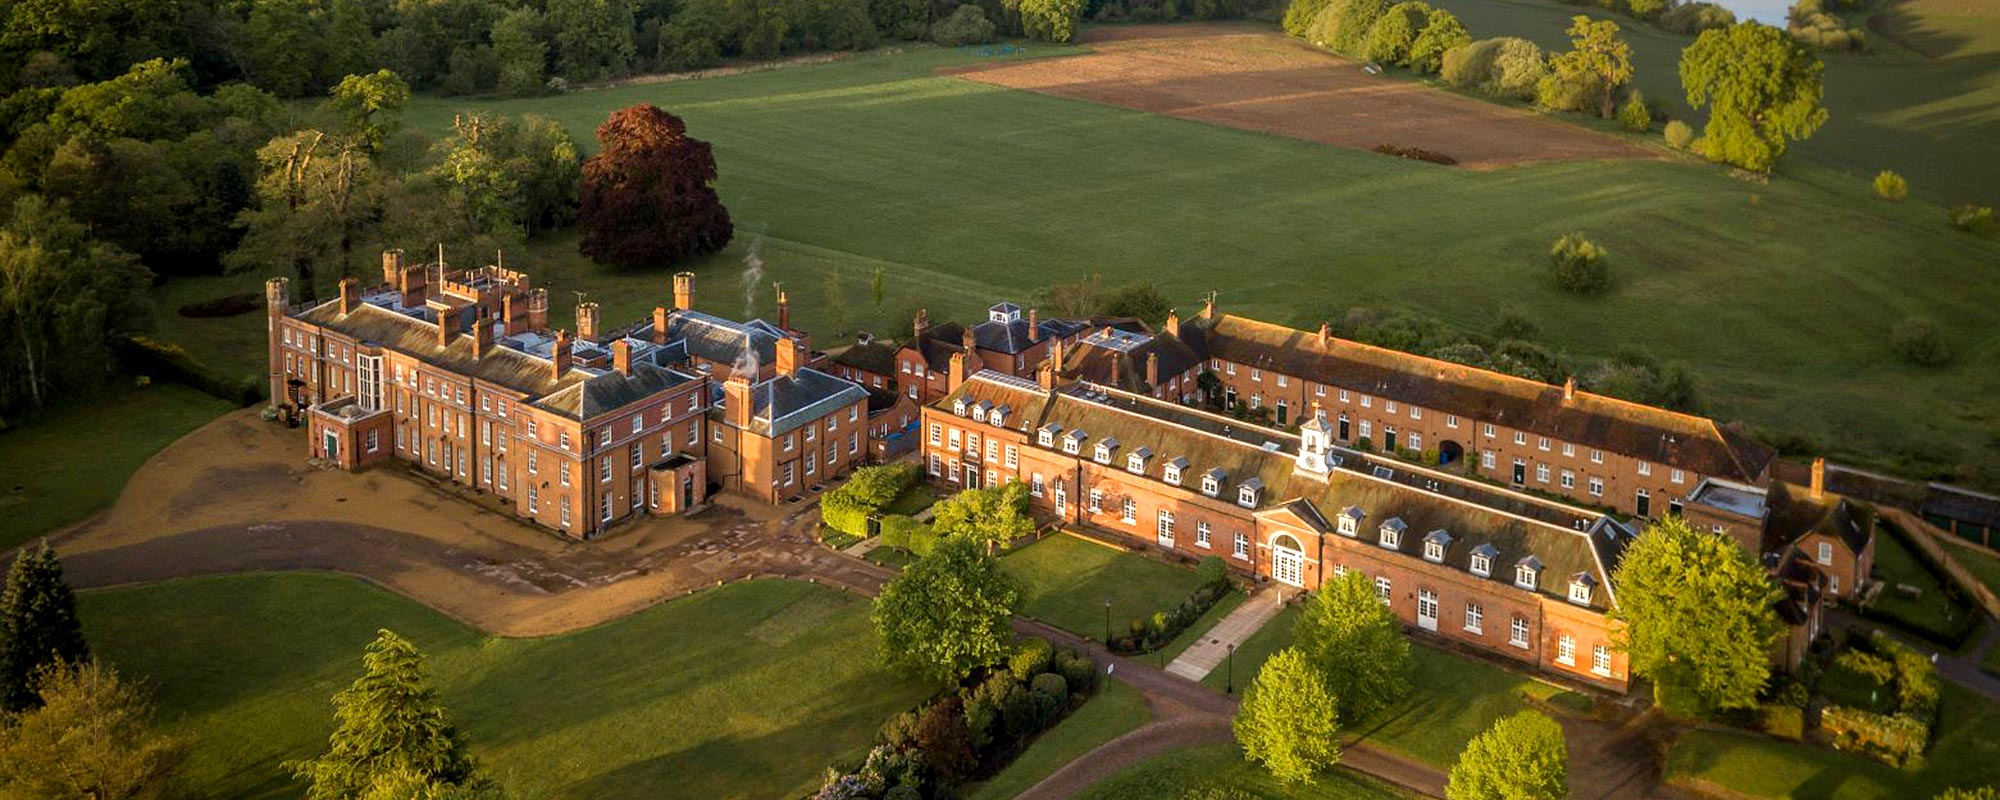 Aerial shot of Cumberland Lodge building and grounds